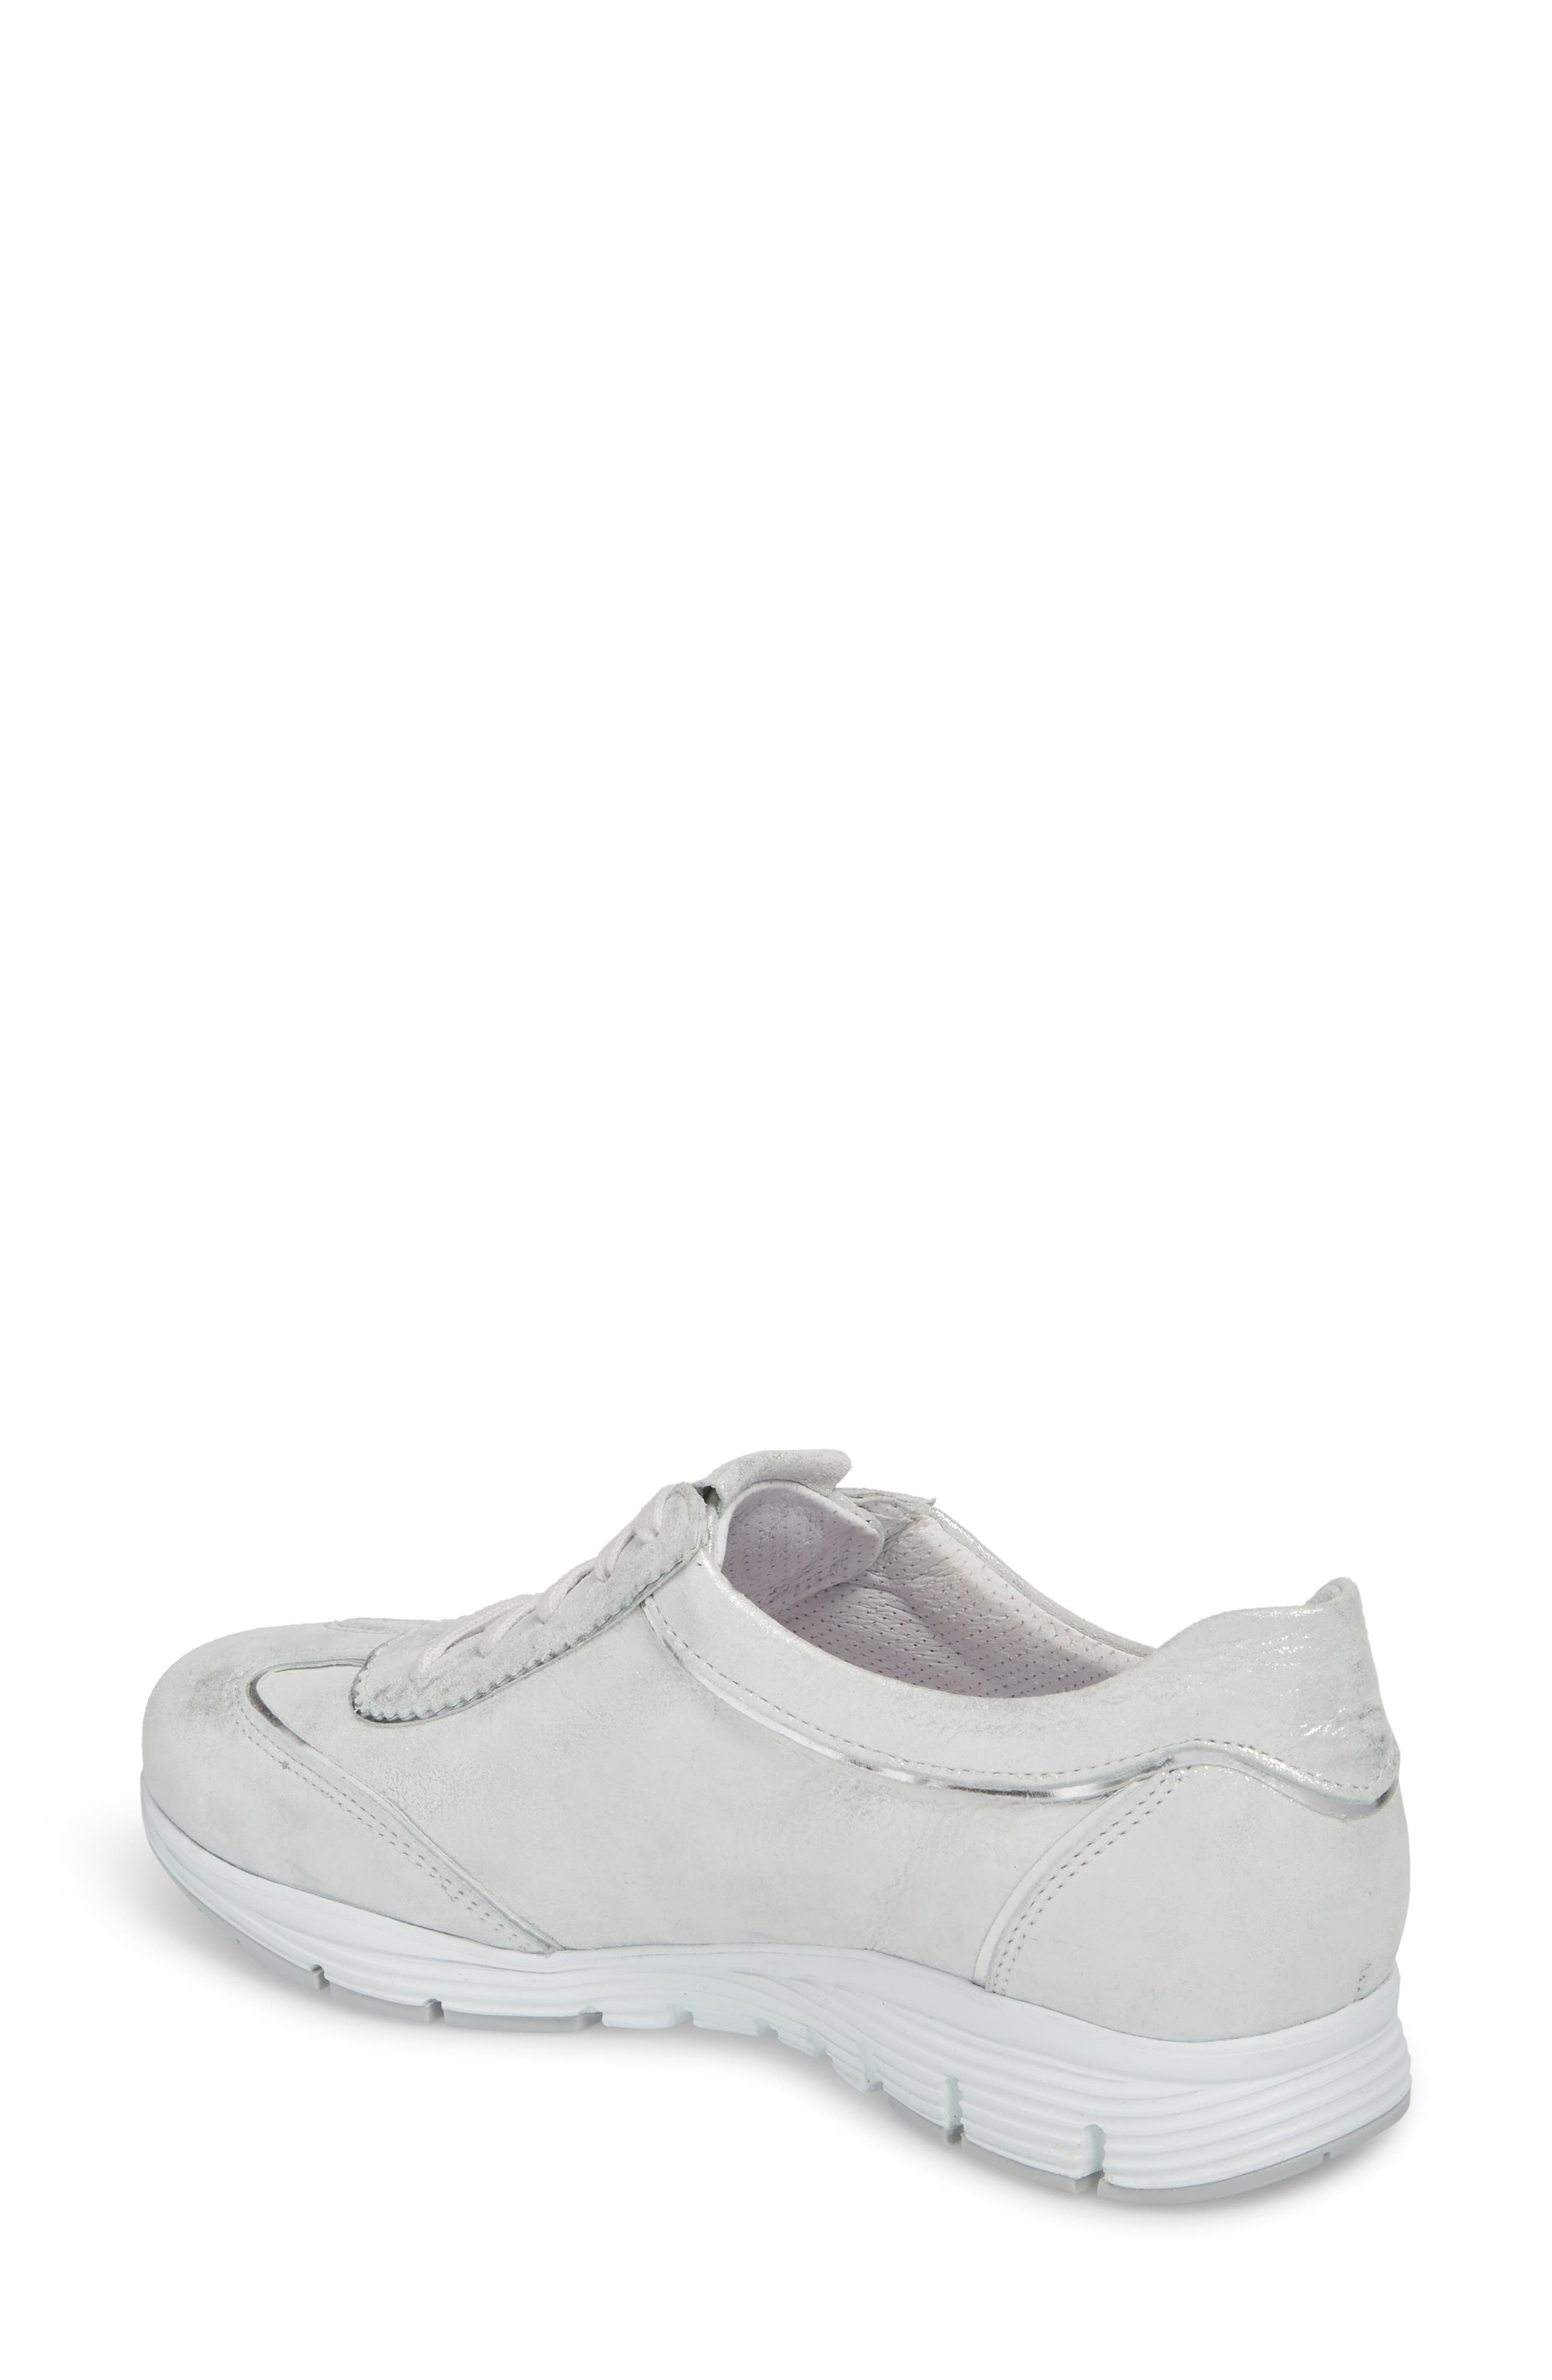 'Yael' Soft-Air Sneaker,                             Alternate thumbnail 2, color,                             Silver Leather